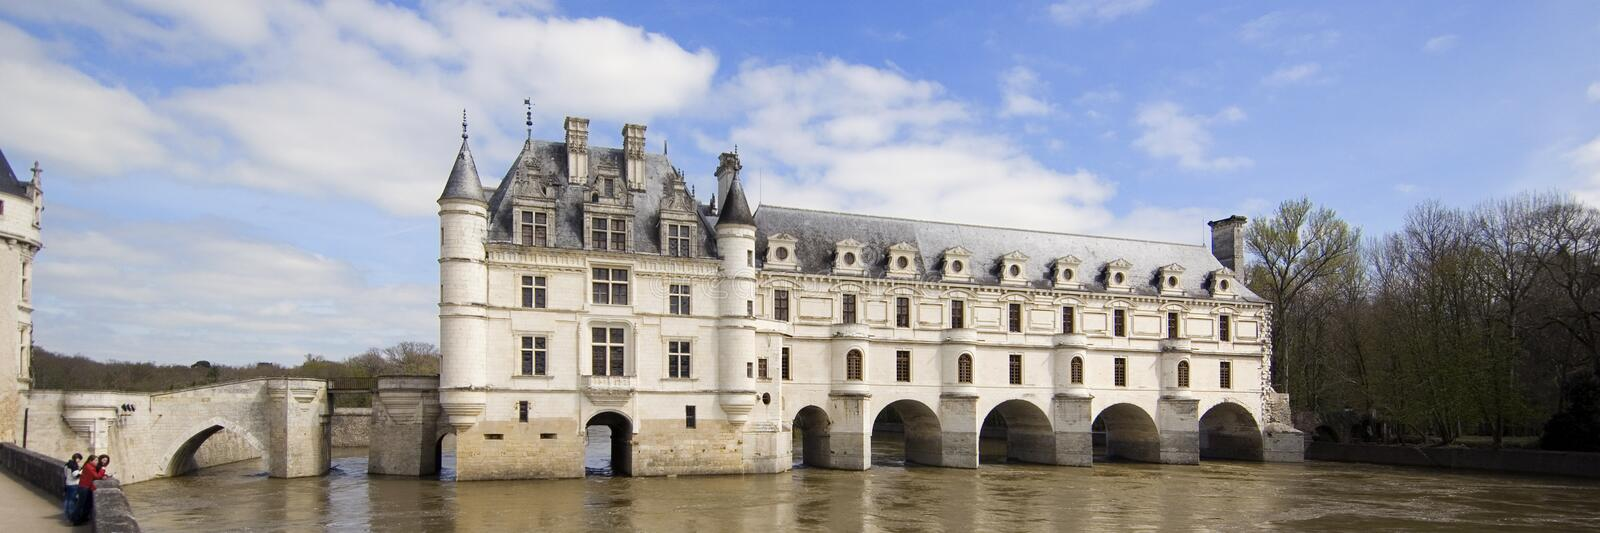 Castle of Chenonceau royalty free stock image